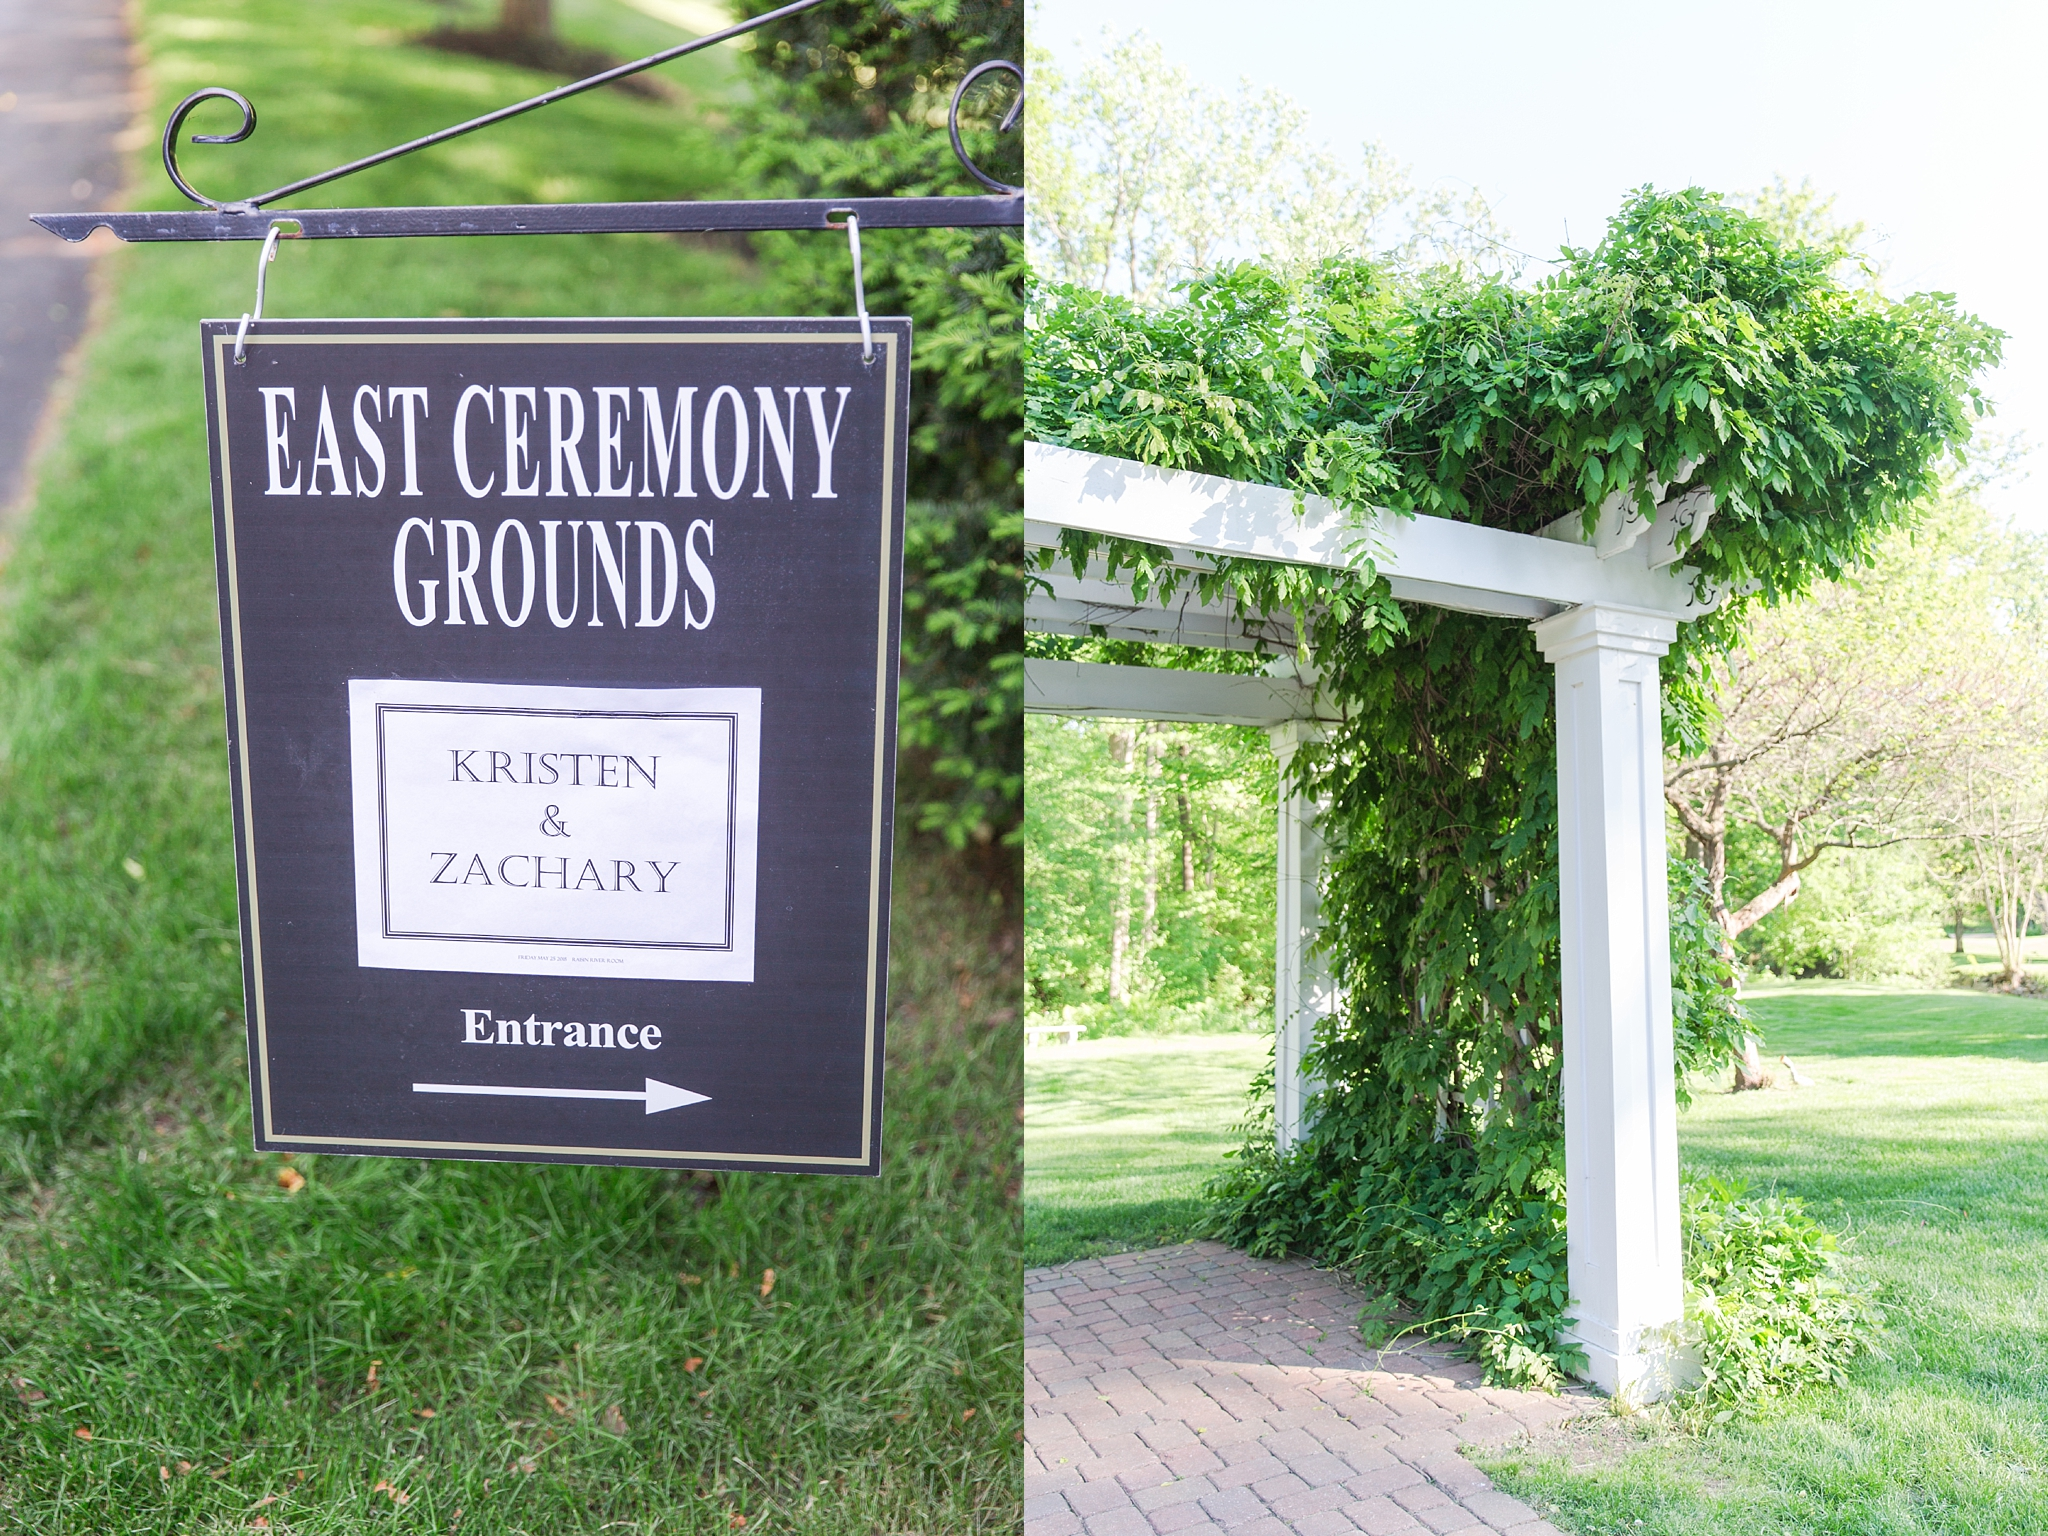 fun-candid-laid-back-wedding-photos-at-wellers-carriage-house-in-saline-michigan-and-at-the-eagle-crest-golf-resort-by-courtney-carolyn-photography_0058.jpg